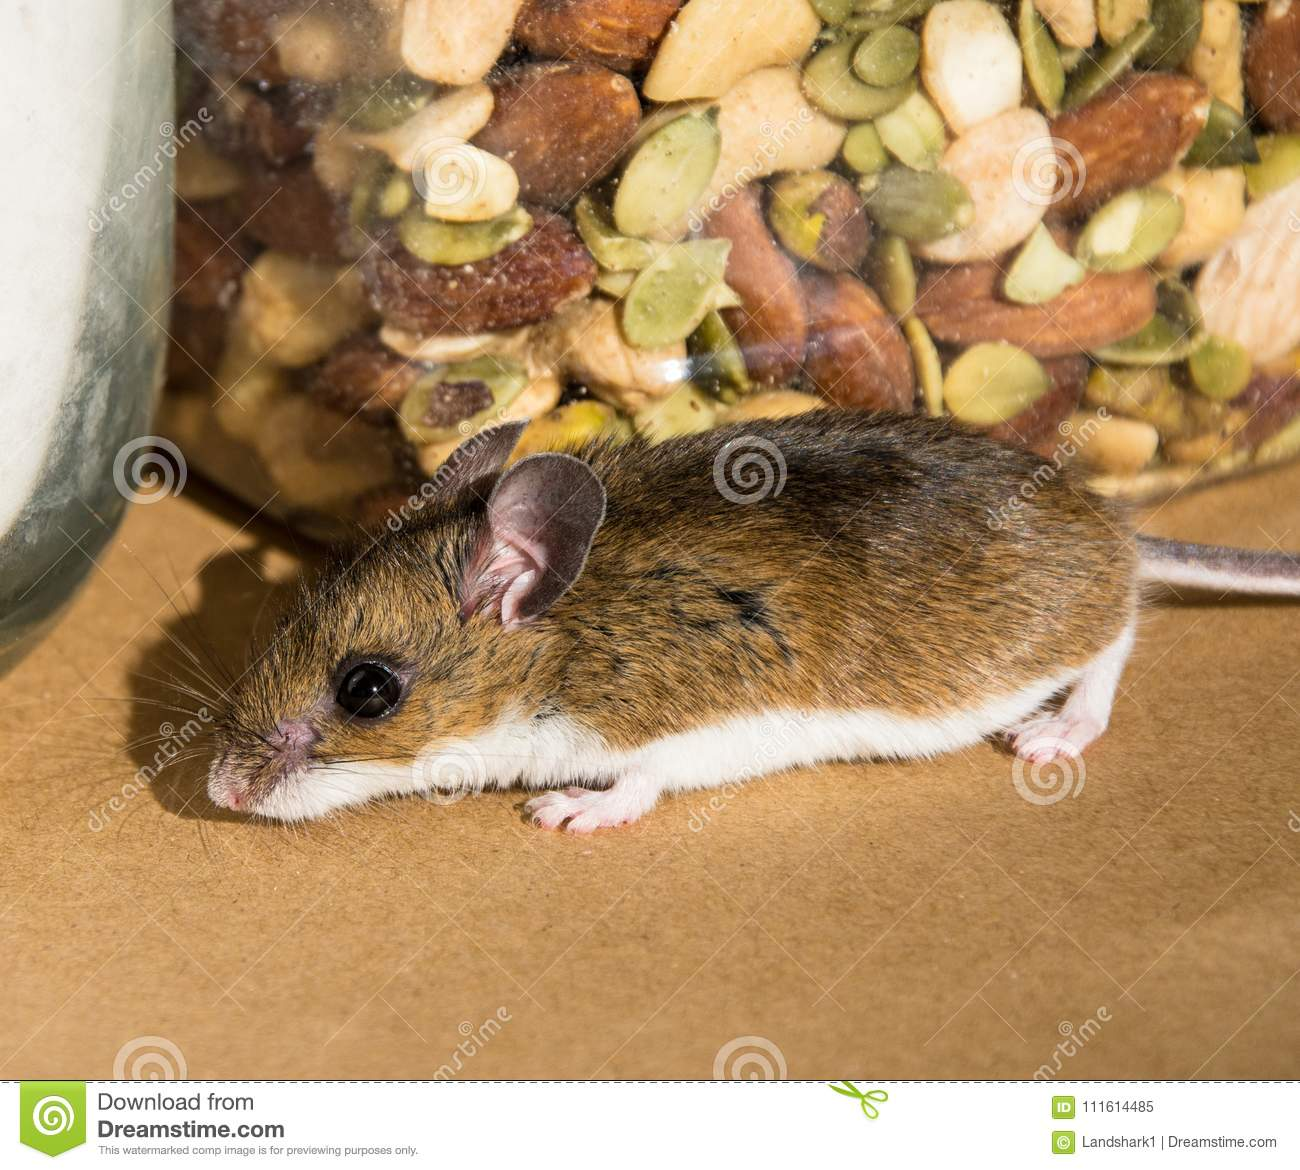 A Wild Brown House Mouse Sniffing Around In A Kitchen Cabinet. Stock ...